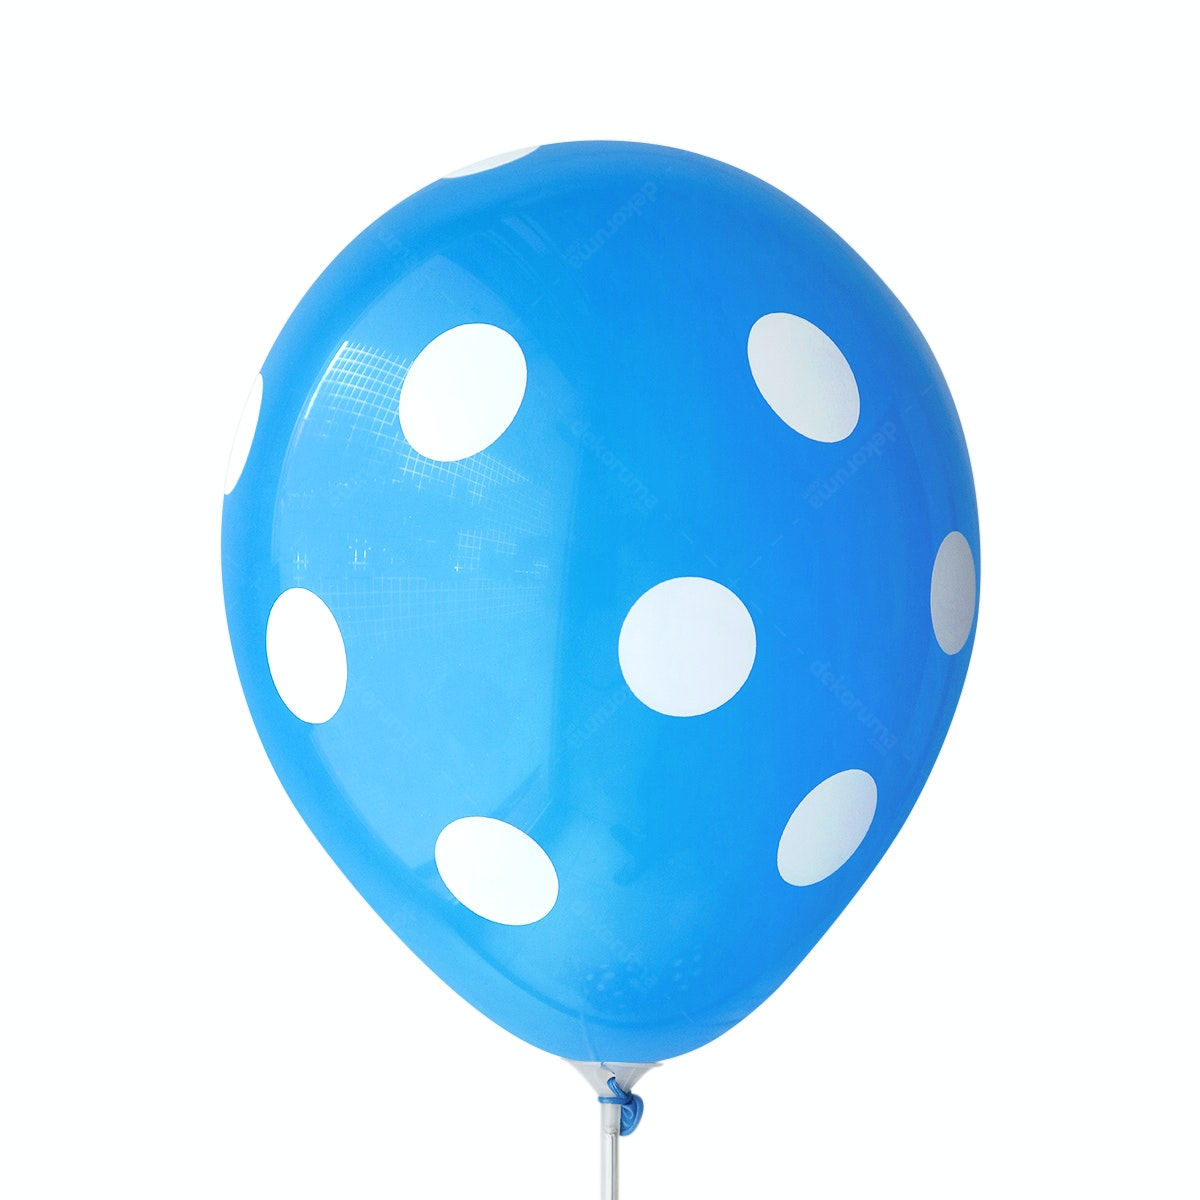 Adalima Balloon Balloon Polkadot Royal Blue QQ